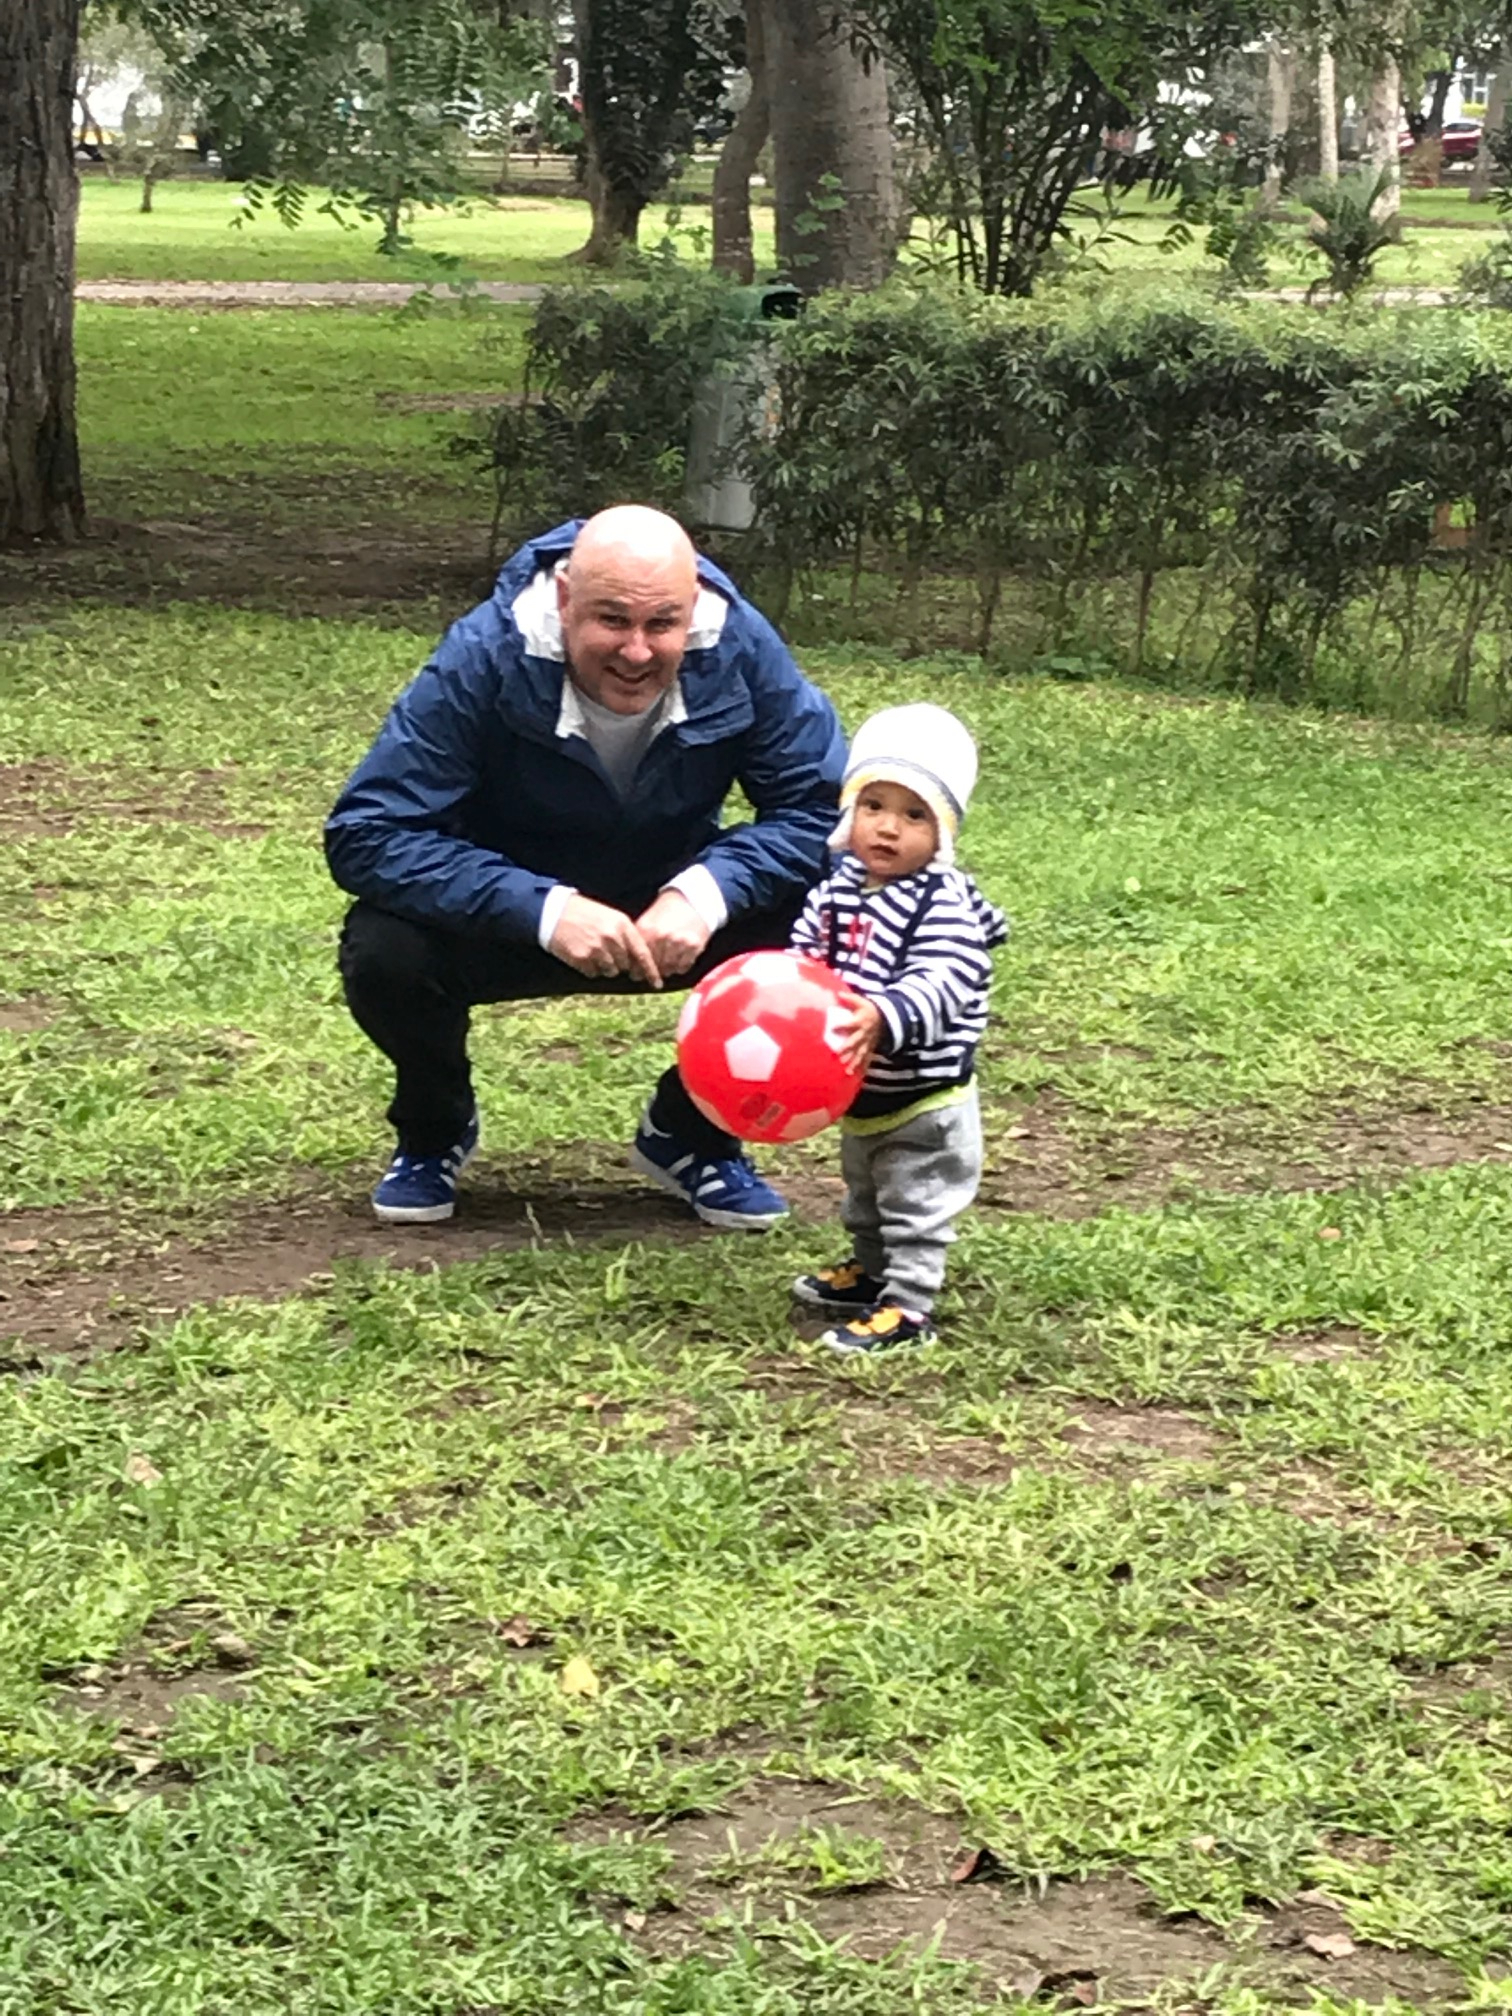 Thiago and Papá (Jed) enjoy time in the park playing ball.